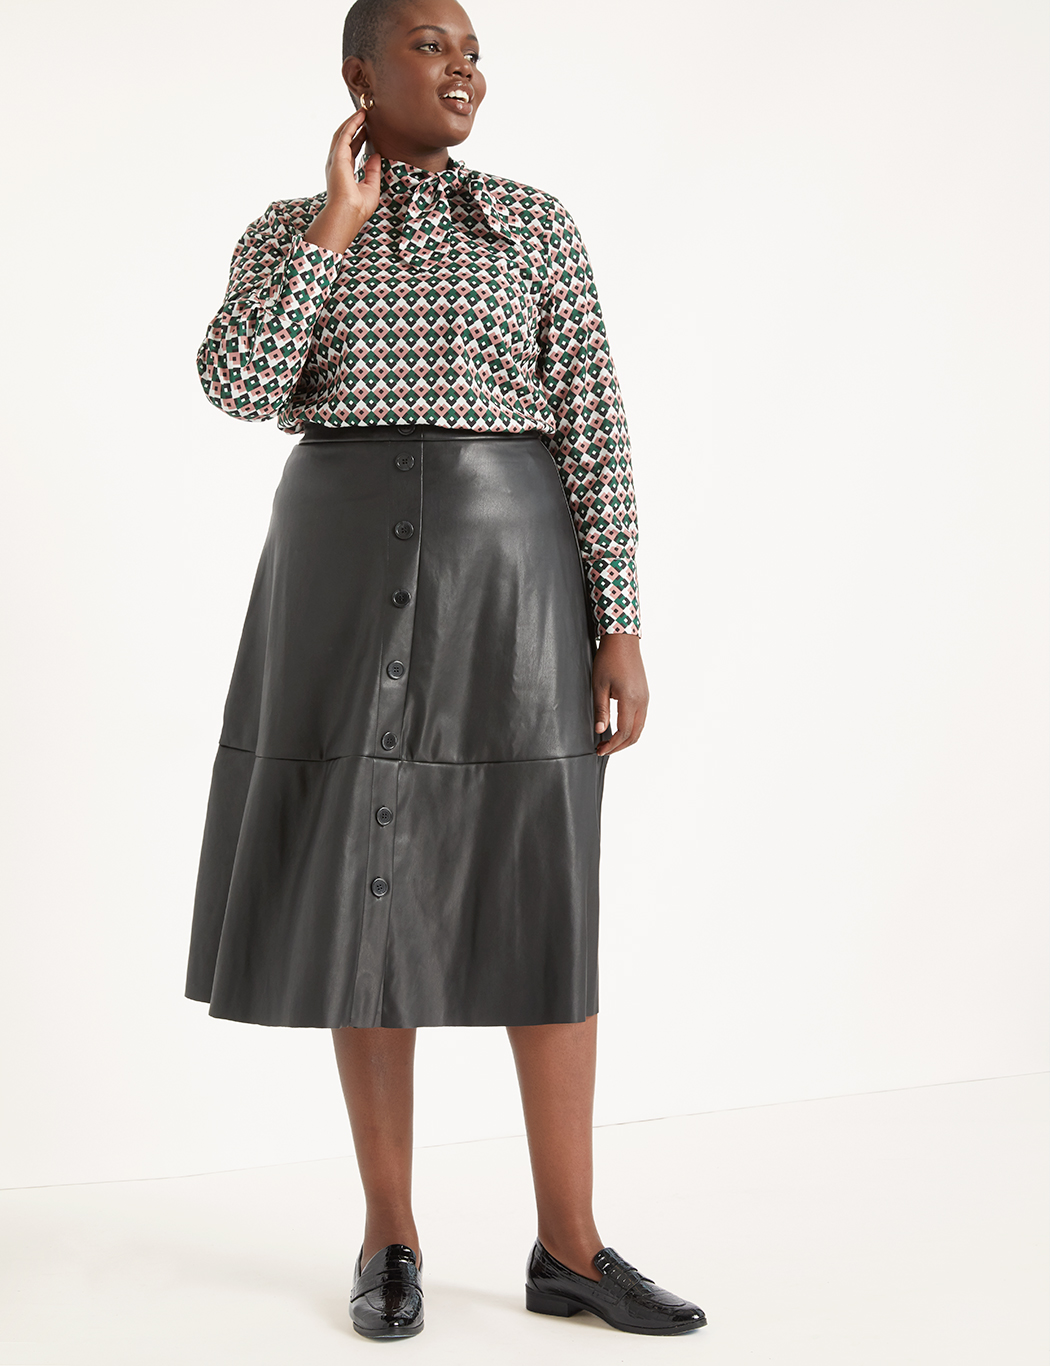 latest design lovely luster 2019 clearance sale Button Front Faux Leather Midi Skirt | Women's Plus Size Skirts | ELOQUII